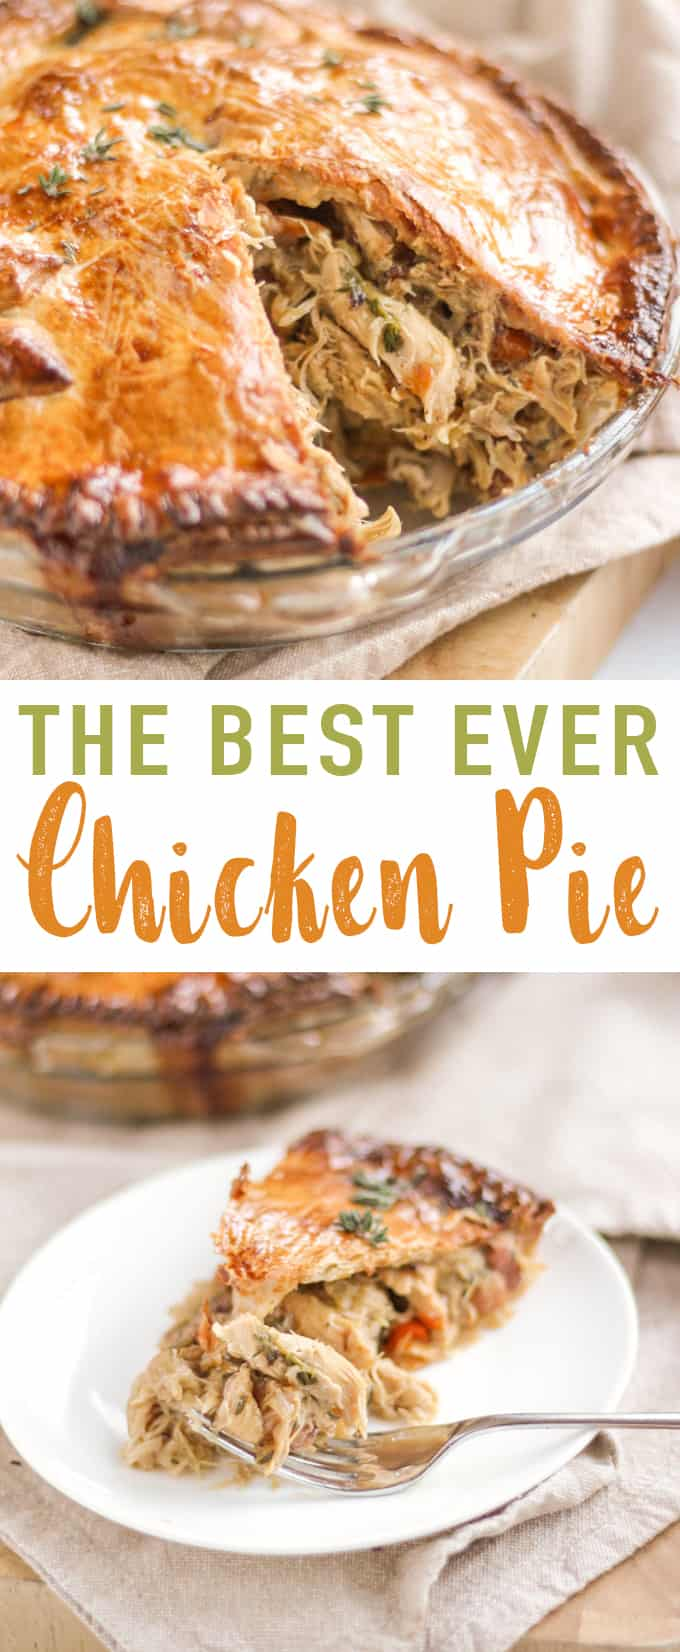 This Chicken Pie recipe has everything you need in a creamy chicken pie. Moist, tasty, home cooked chicken, added vegetables and a light chicken pie sauce made with the chicken stock. Add in some crispy bacon and delicious shortcrust pastry and this easy chicken pie recipe is a winner!